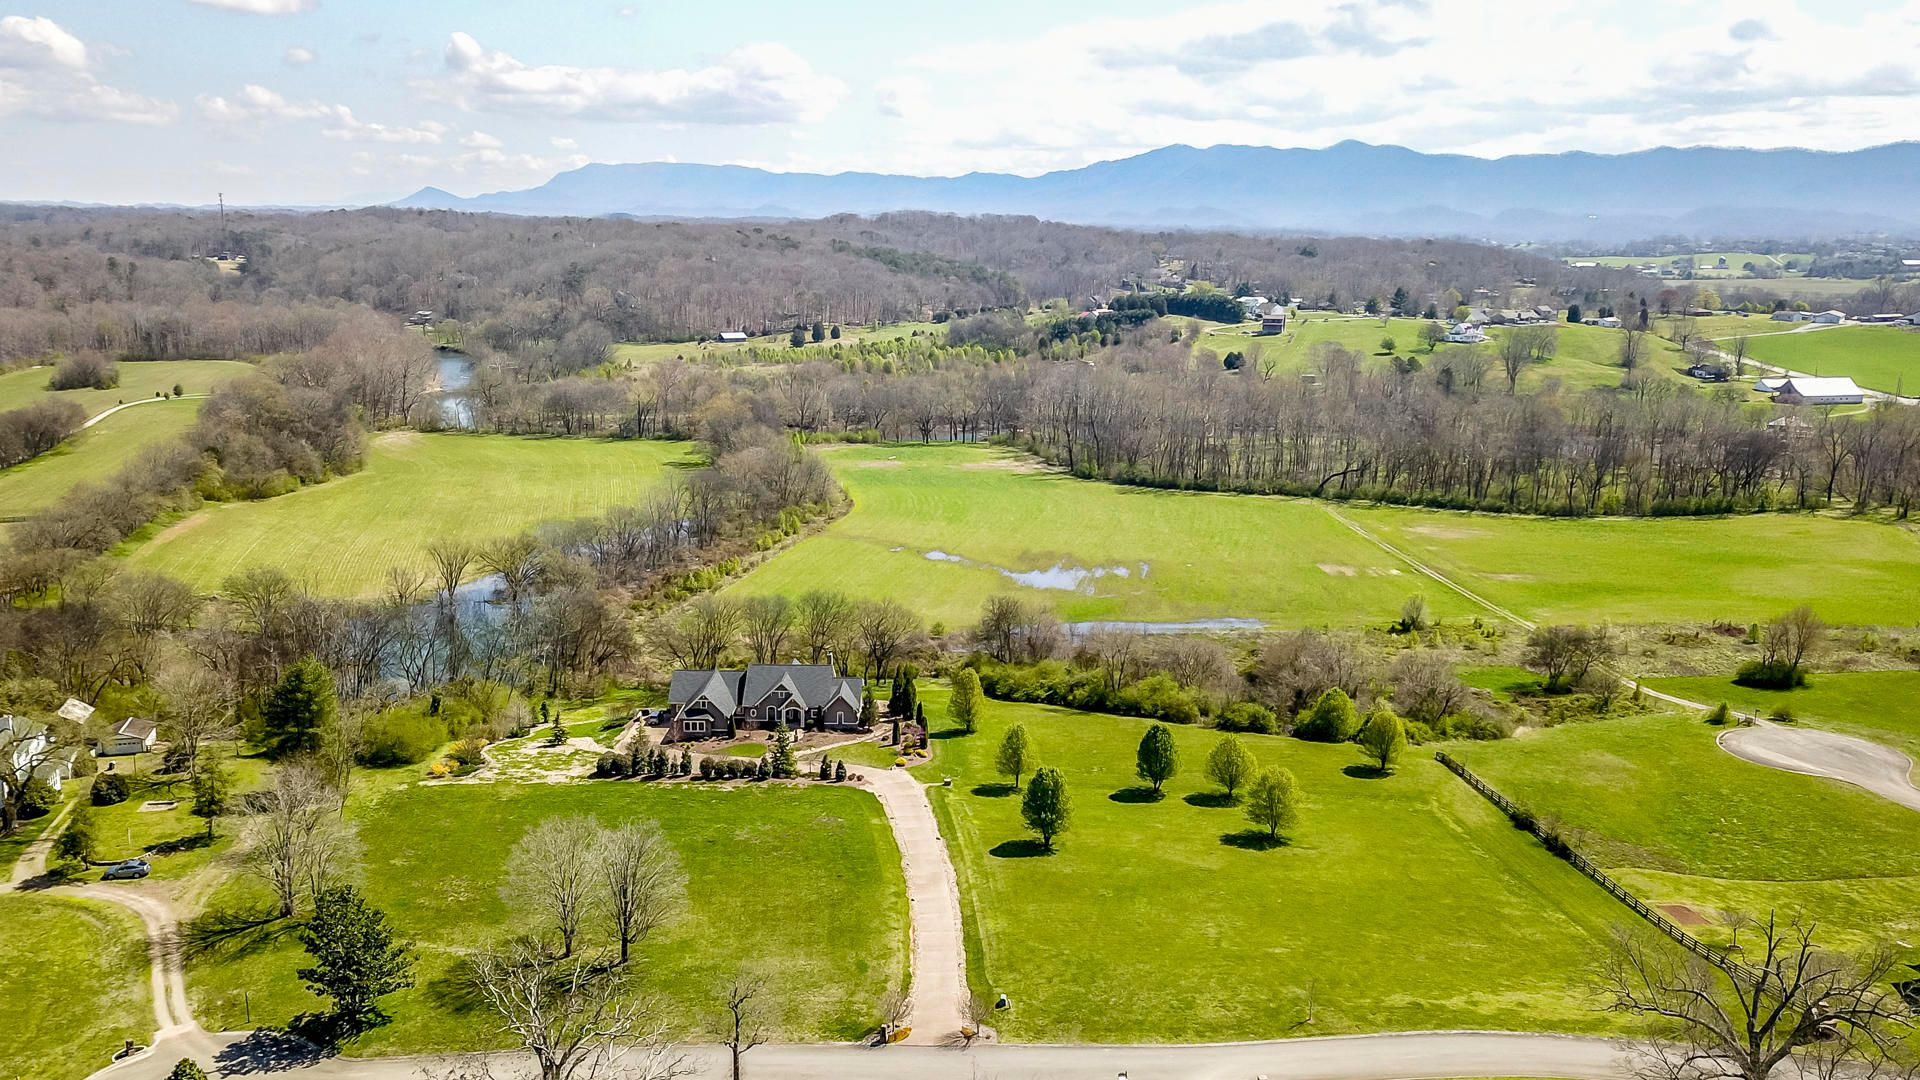 Total of 3.38 acres